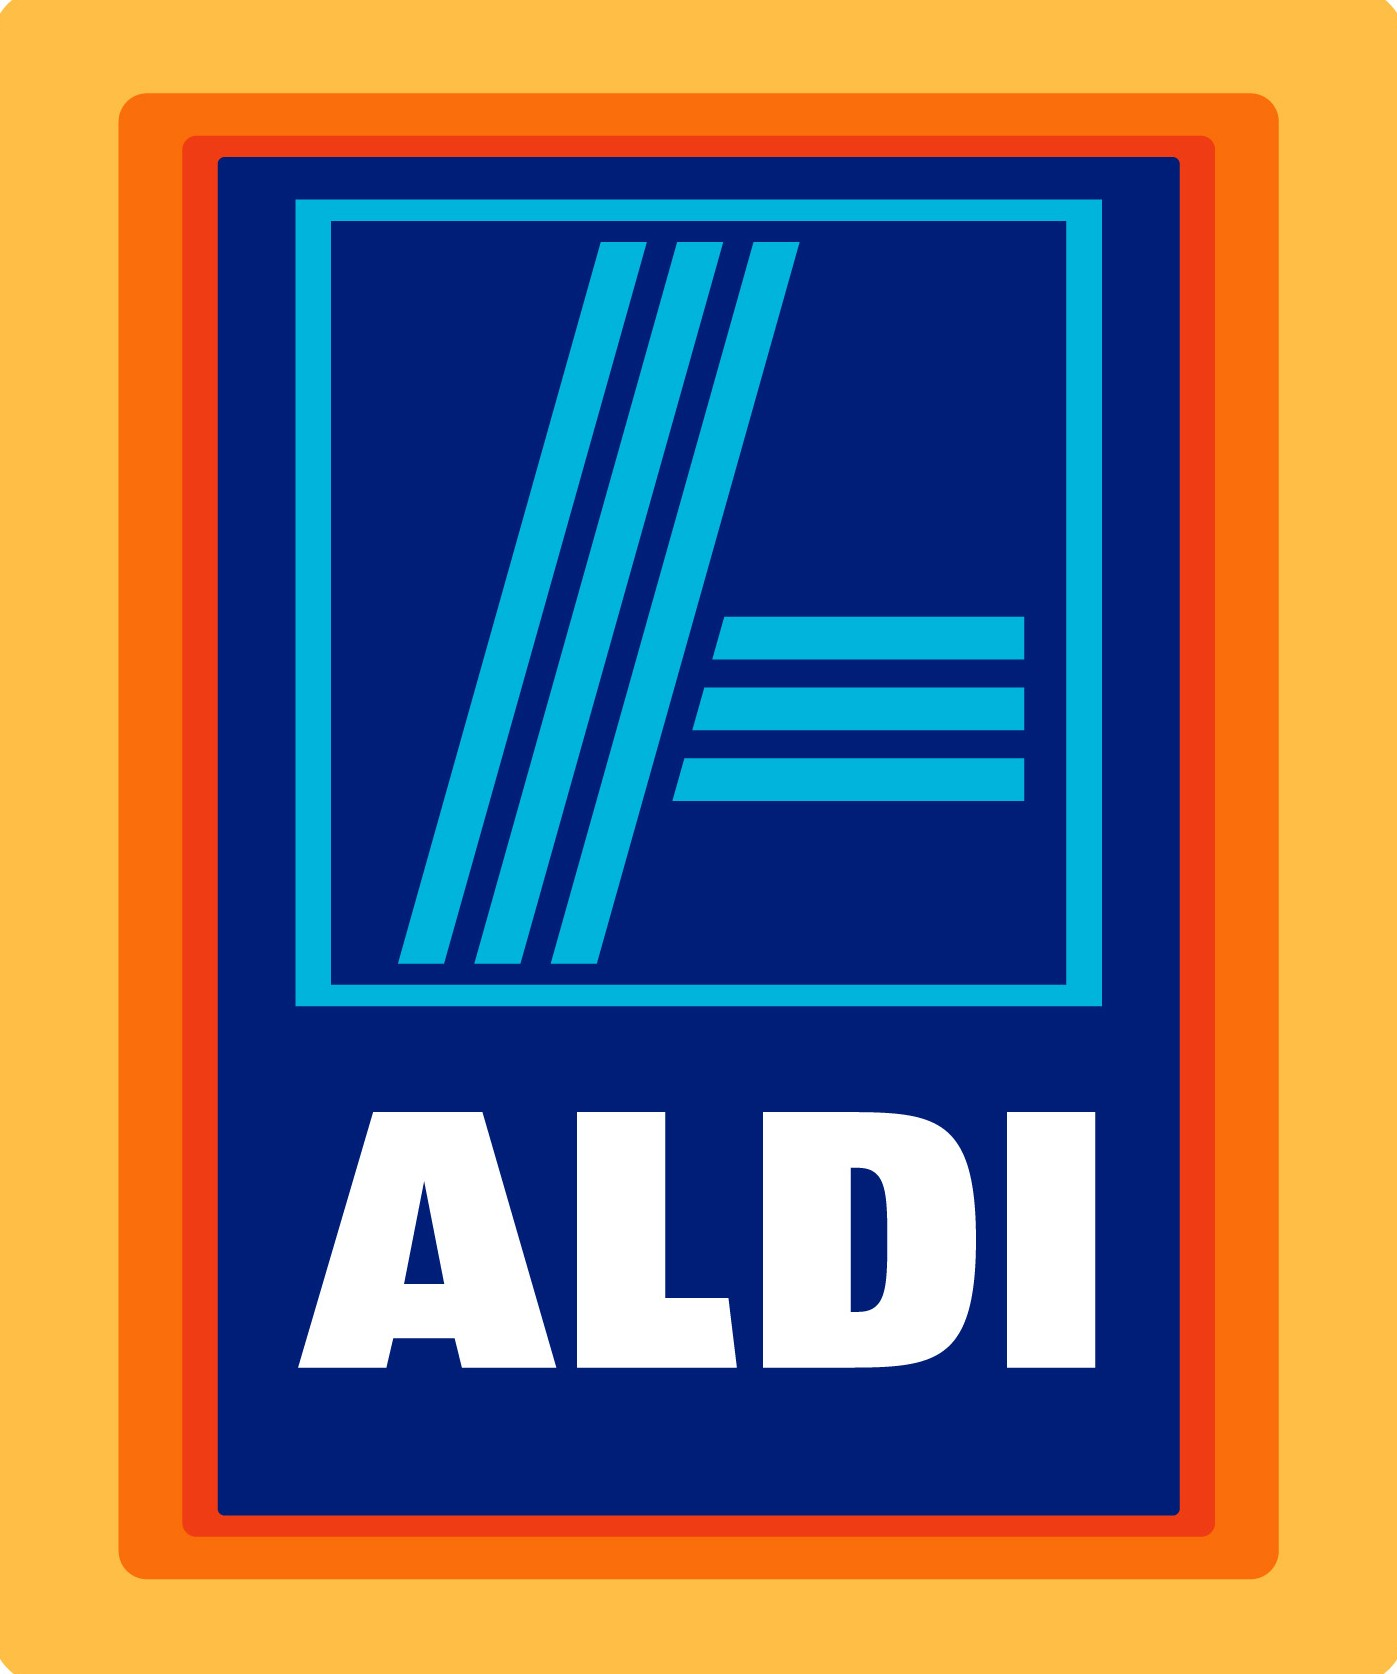 graphic about Aldi Printable Application identified as ALDI Computer software - #1 Useful resource for Process Systems On line